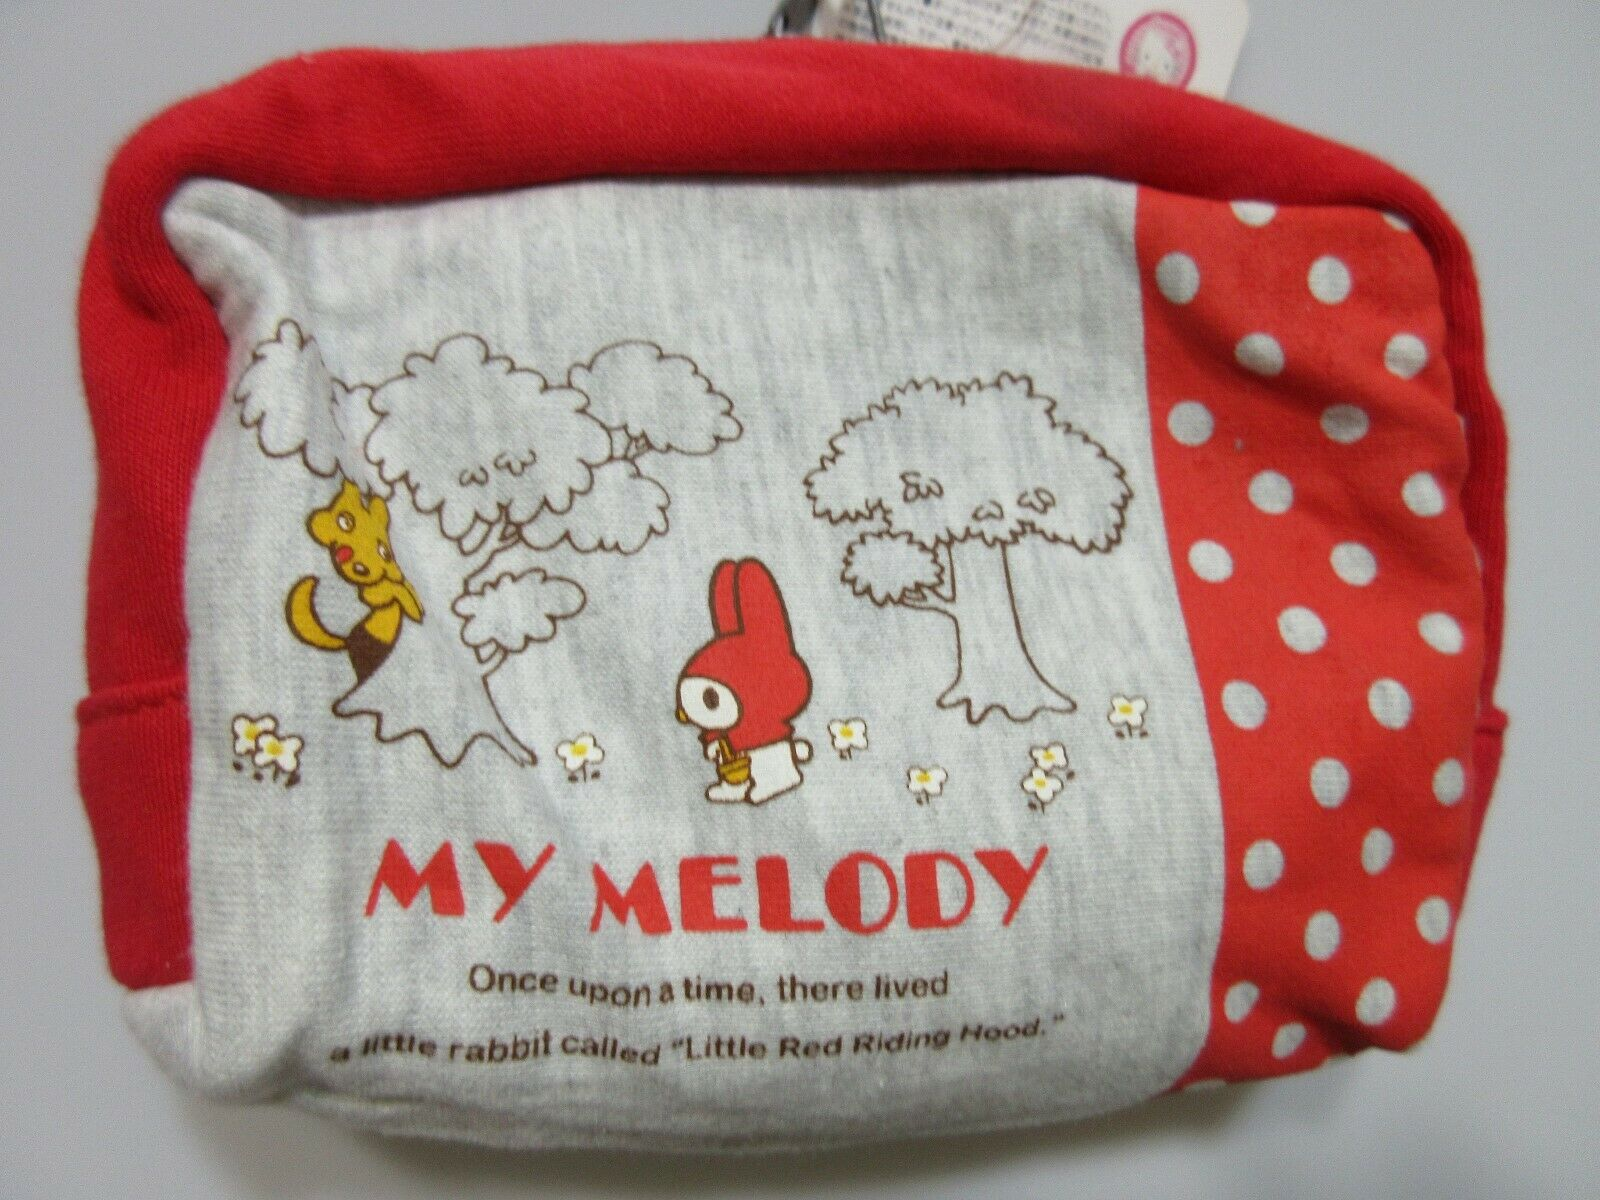 My Melody Little Red Riding Hood Rabbit Makeup Bag Zip Up Red Gray Polka Dot NWT